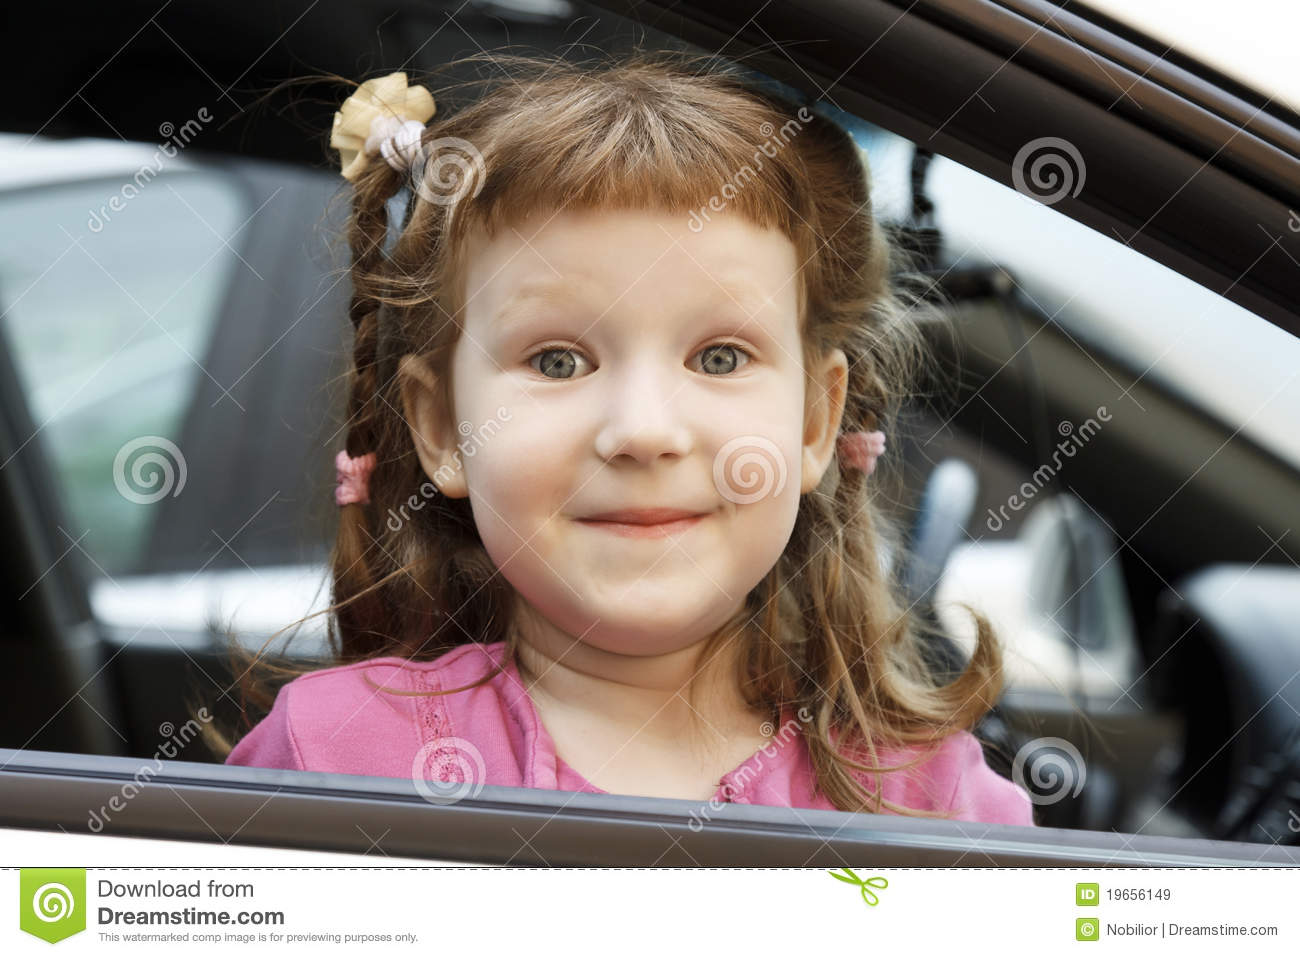 Bambina sveglia in un automobile